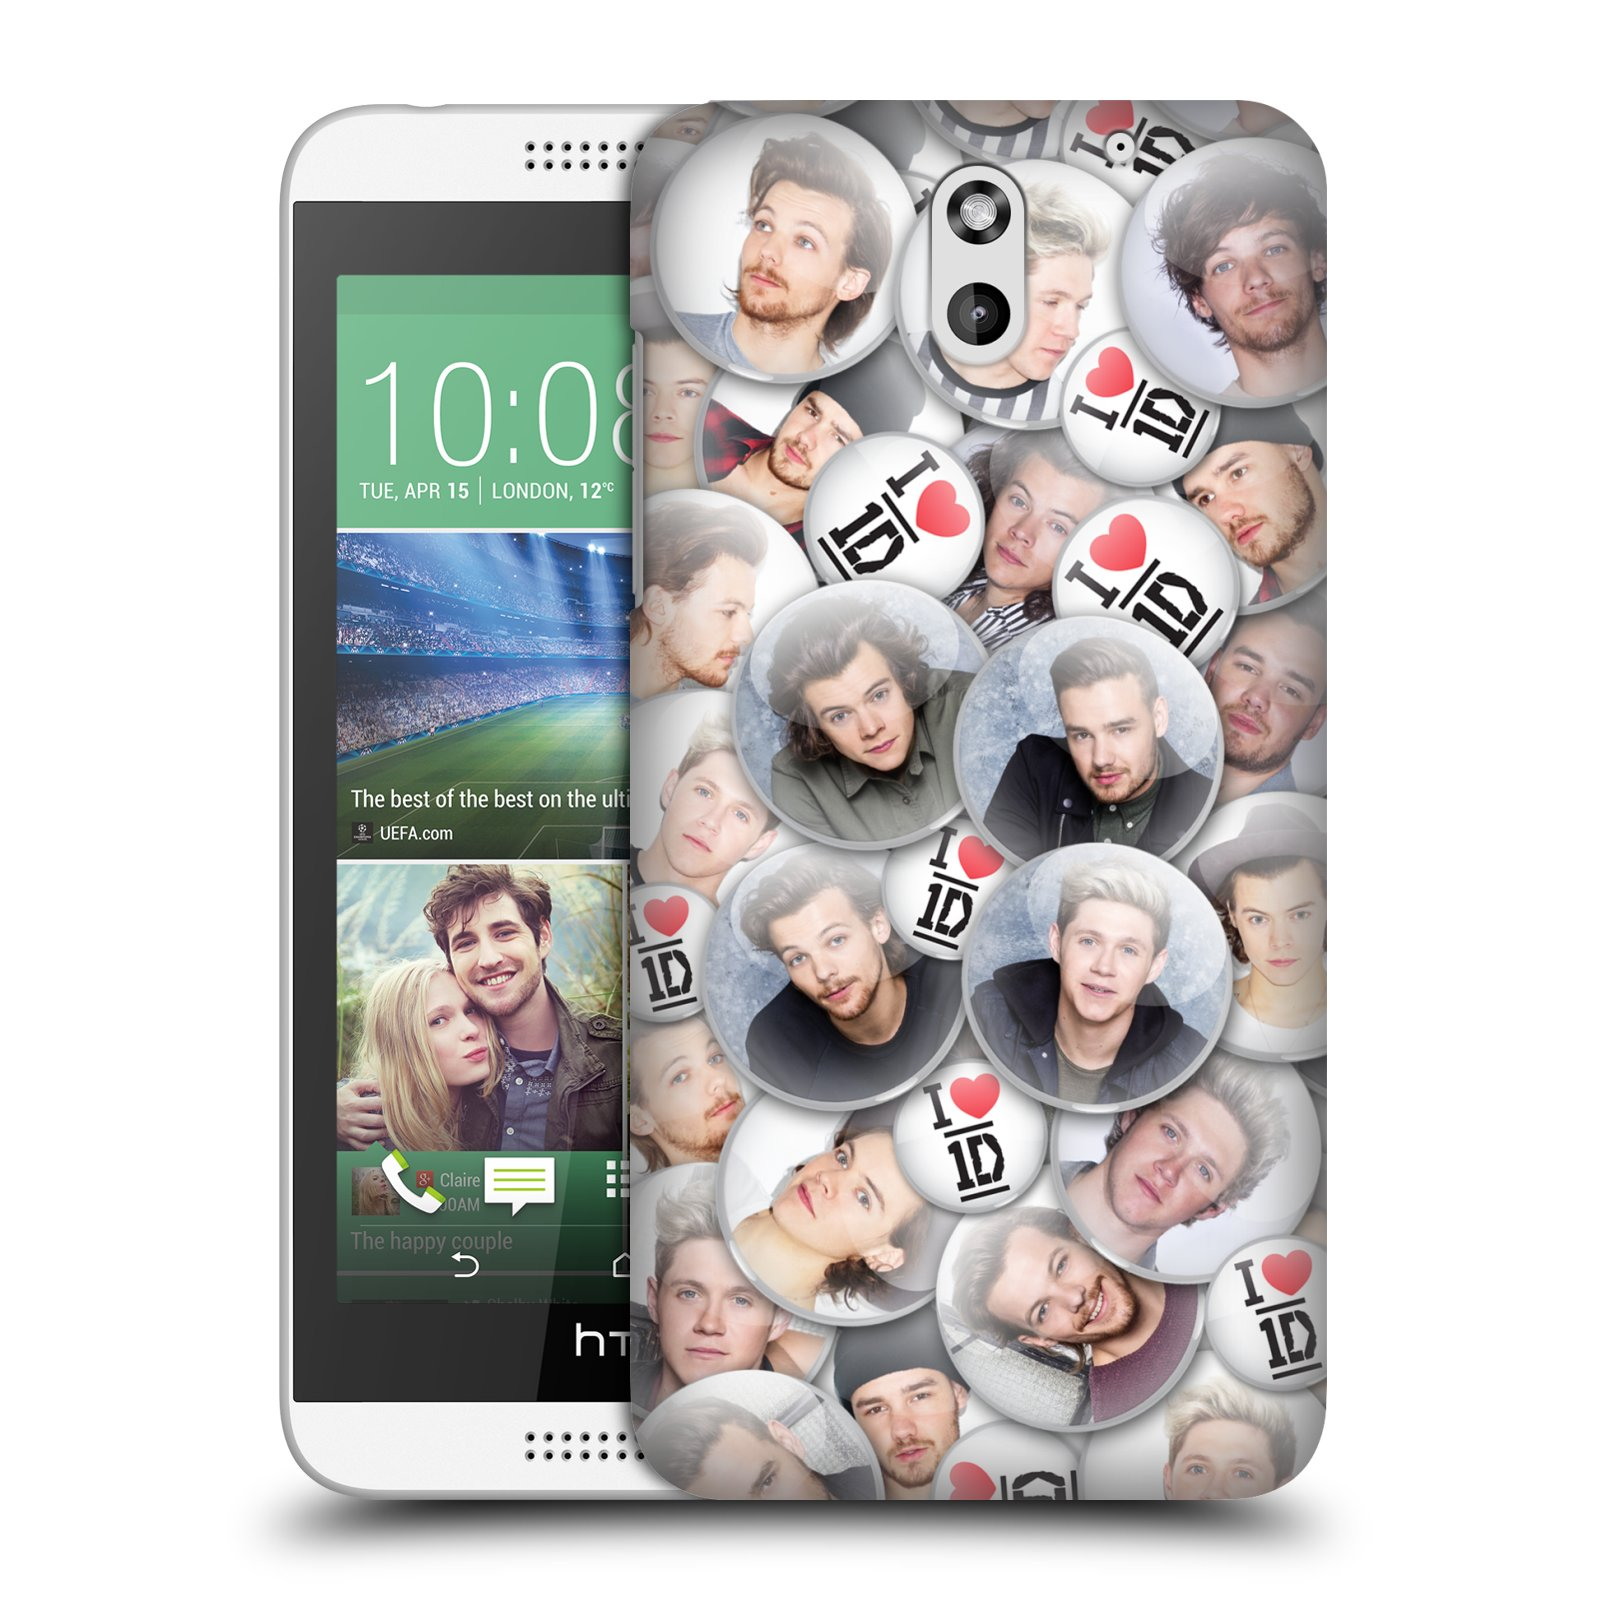 OFFICIAL-ONE-DIRECTION-1D-BUTTON-PINS-HARD-BACK-CASE-FOR-HTC-PHONES-2